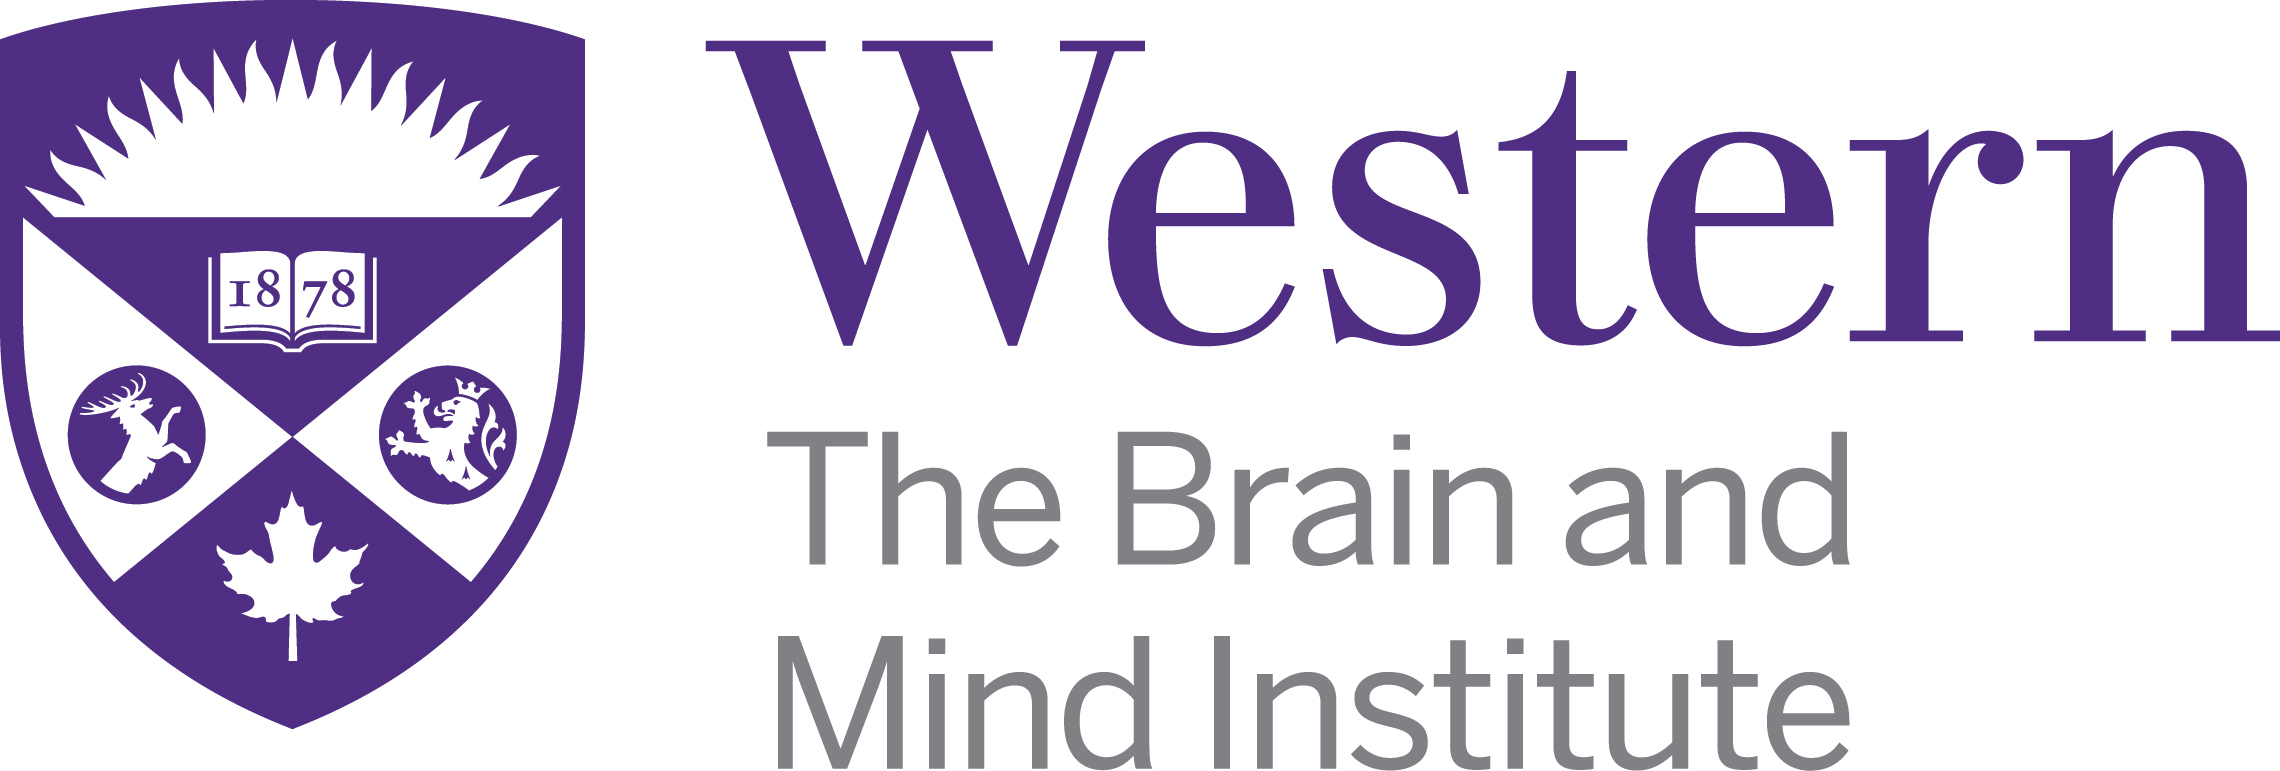 The Brain and Mind Institute at Western University